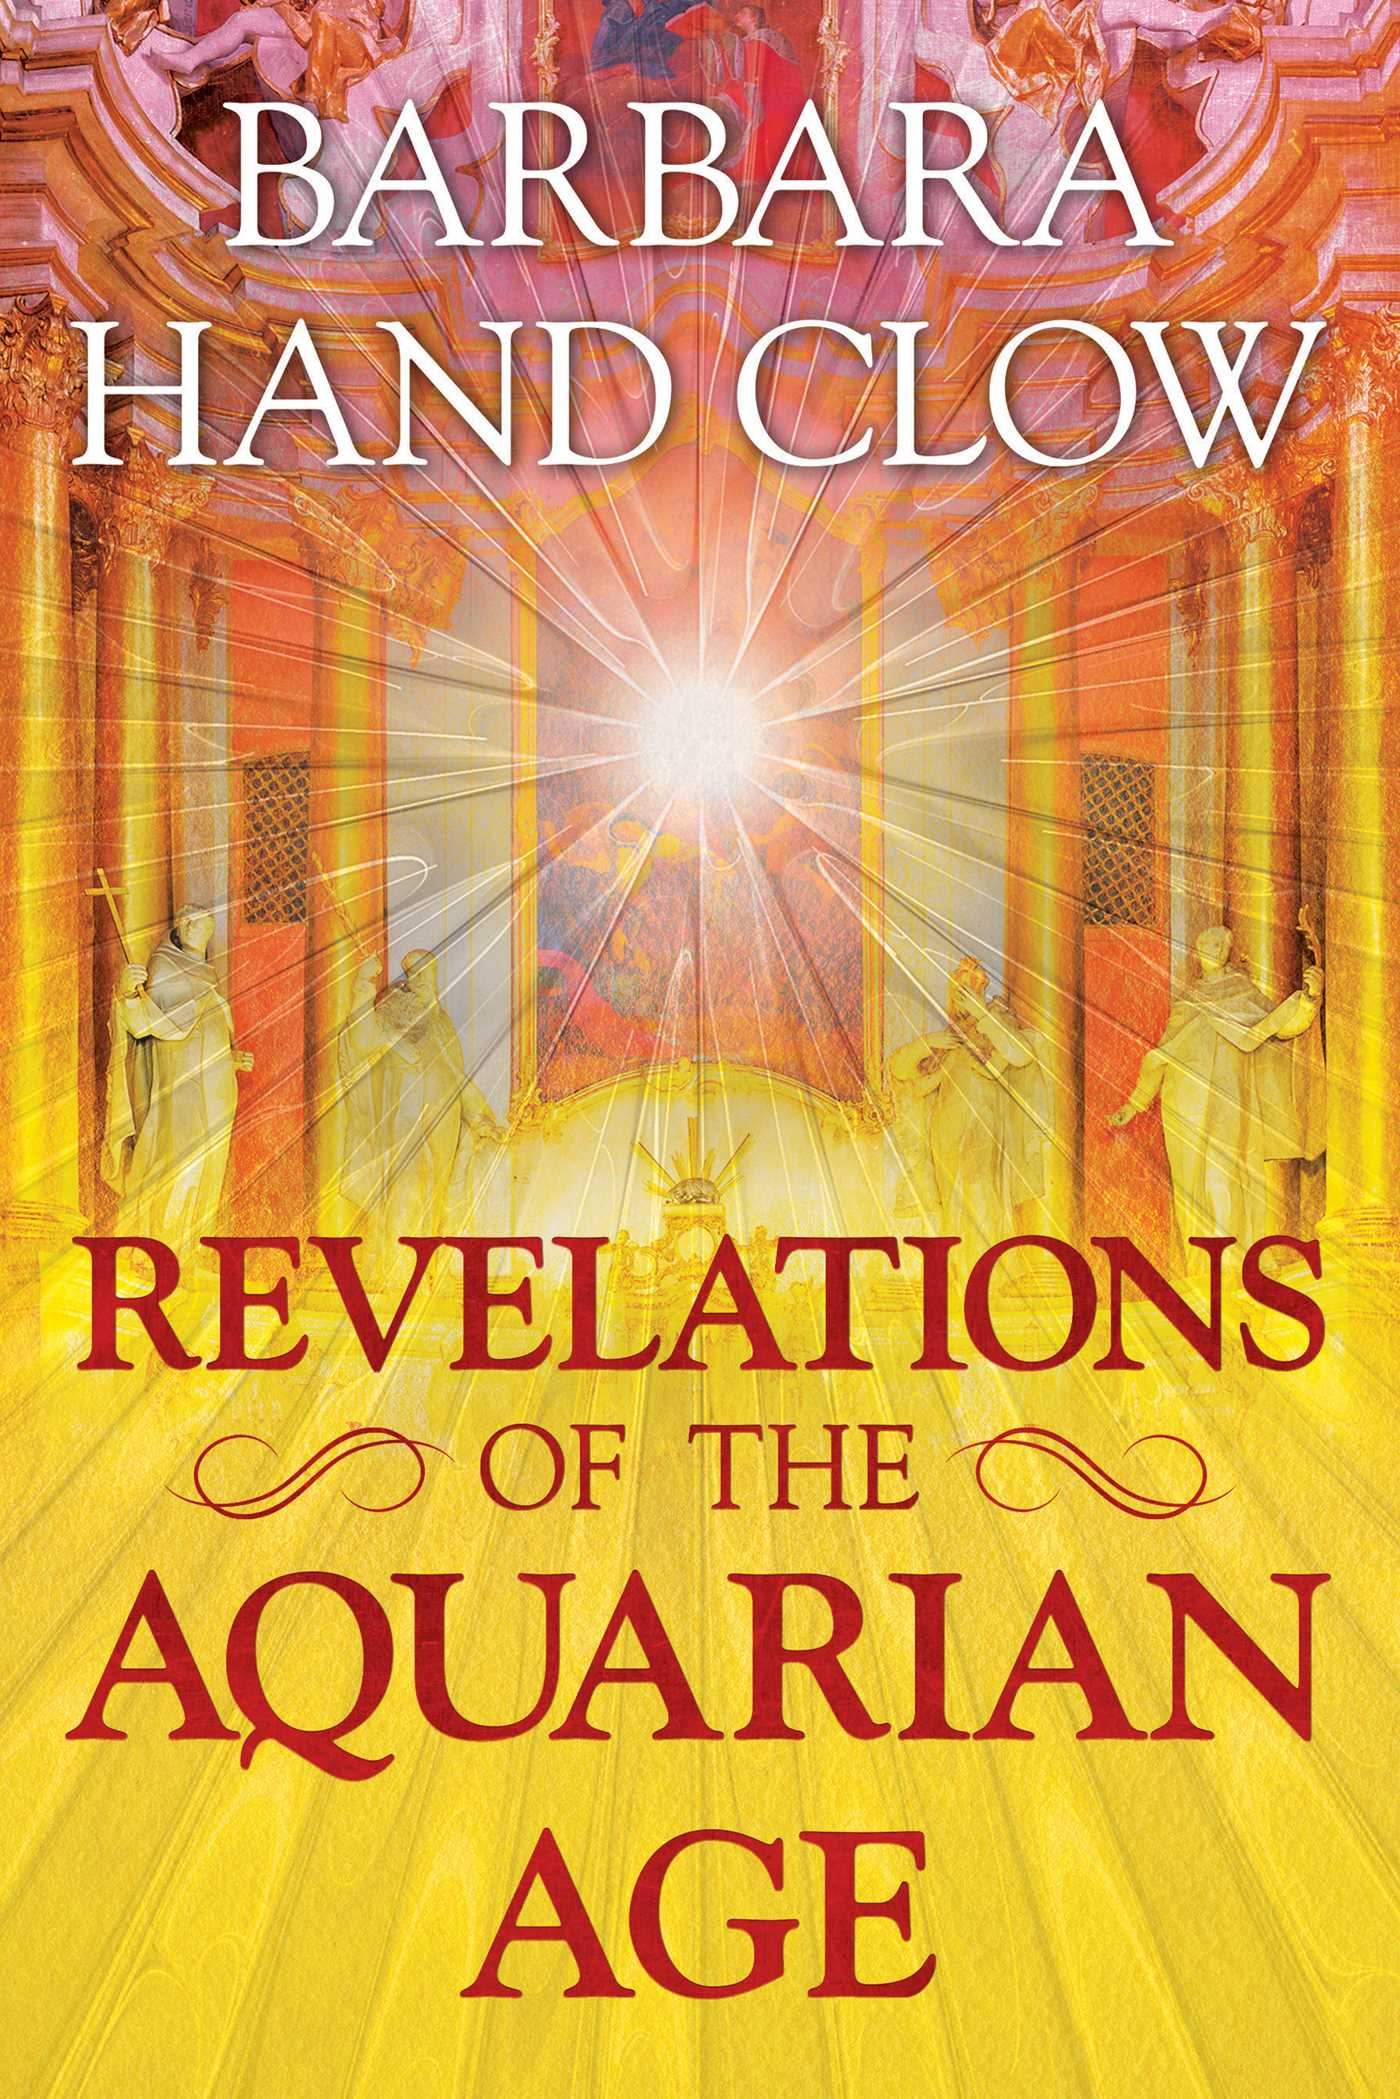 Revelations of the aquarian age 9781591432968 hr